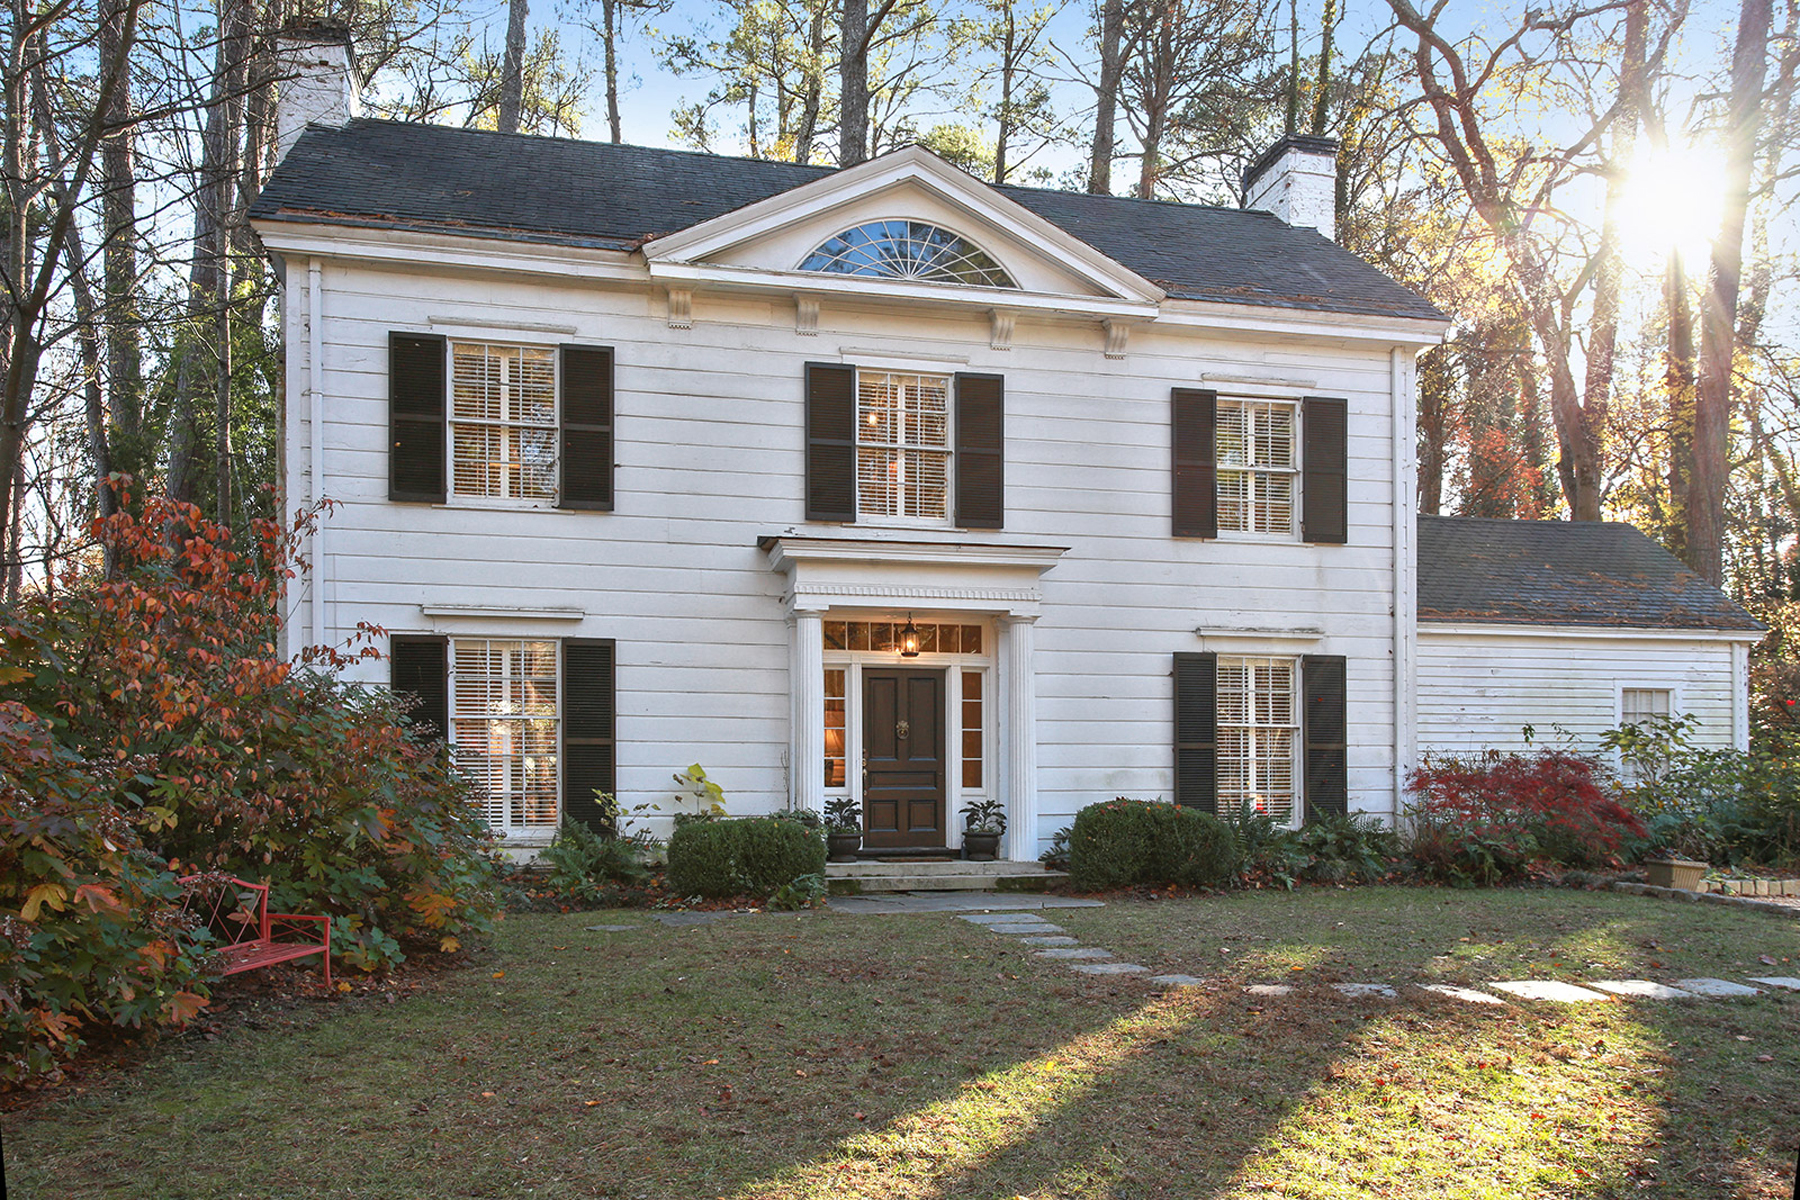 Single Family Home for Sale at Beautiful Greek Revival Home In Buckhead 504 West Wesley Atlanta, Georgia, 30305 United States